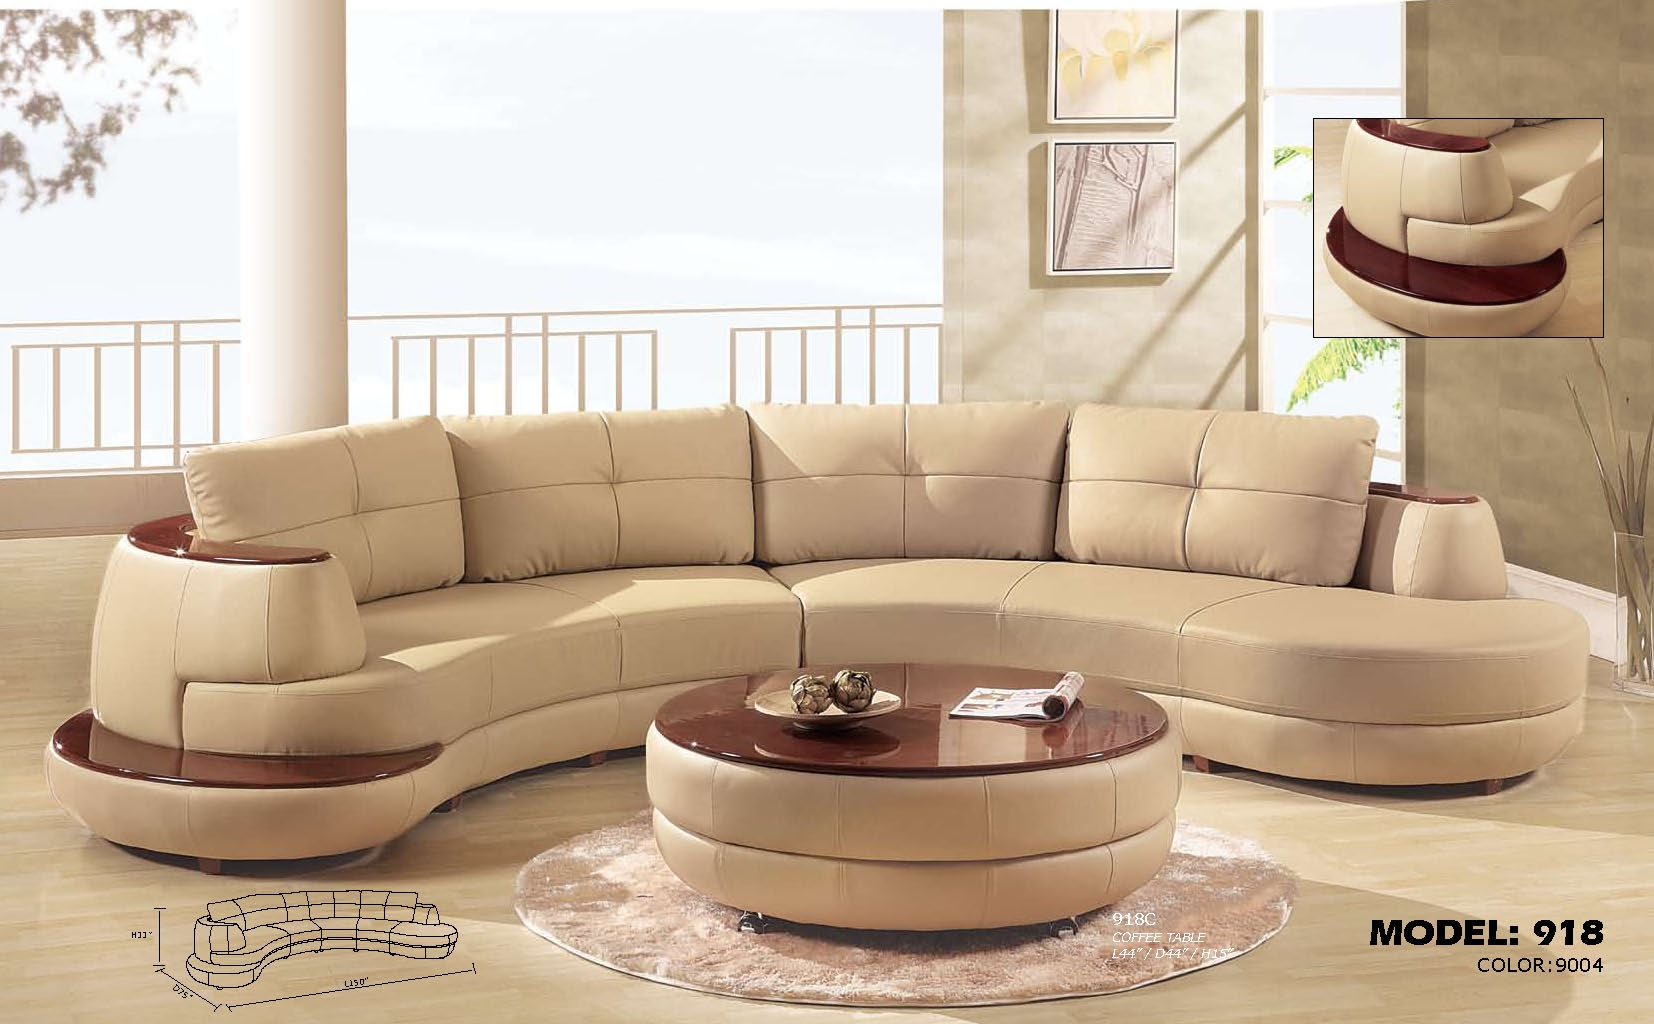 Curved Sectionals Leather Sofas Roselawnlutheran For Circular Sectional Sofa (Image 5 of 15)